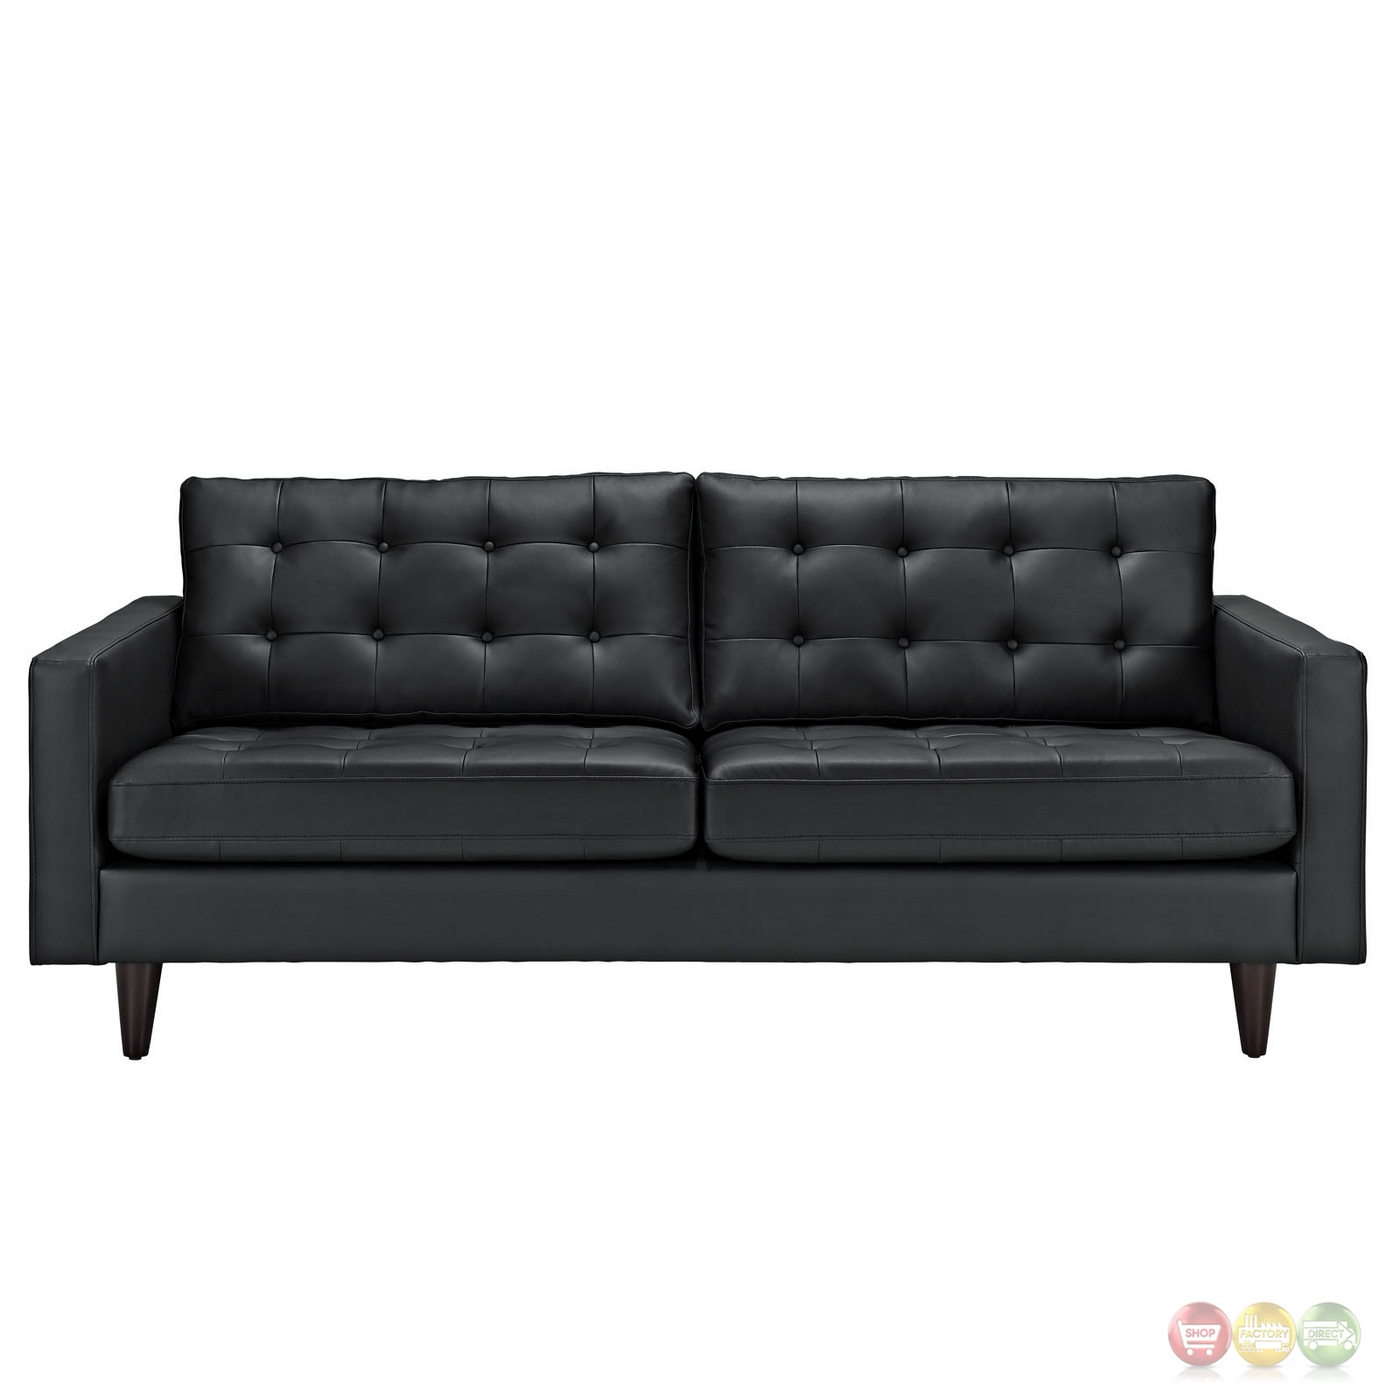 empress contemporary button tufted leather sofa black. Black Bedroom Furniture Sets. Home Design Ideas